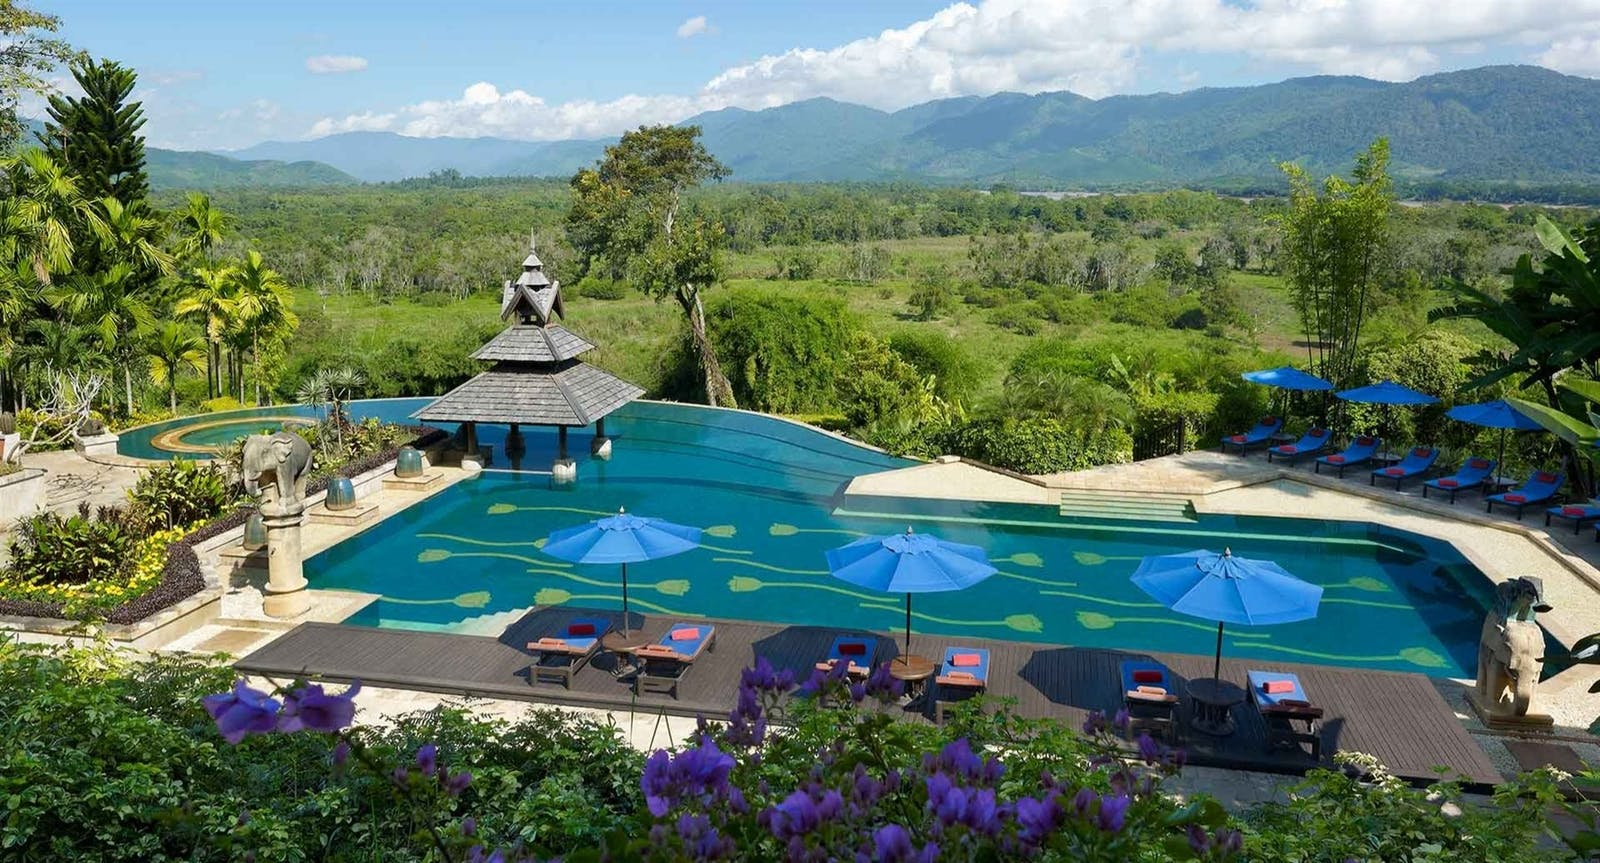 Pool at Anantara Golden Triangle Elephant Camp Resort, Chiang Rai, Thailand, Asia